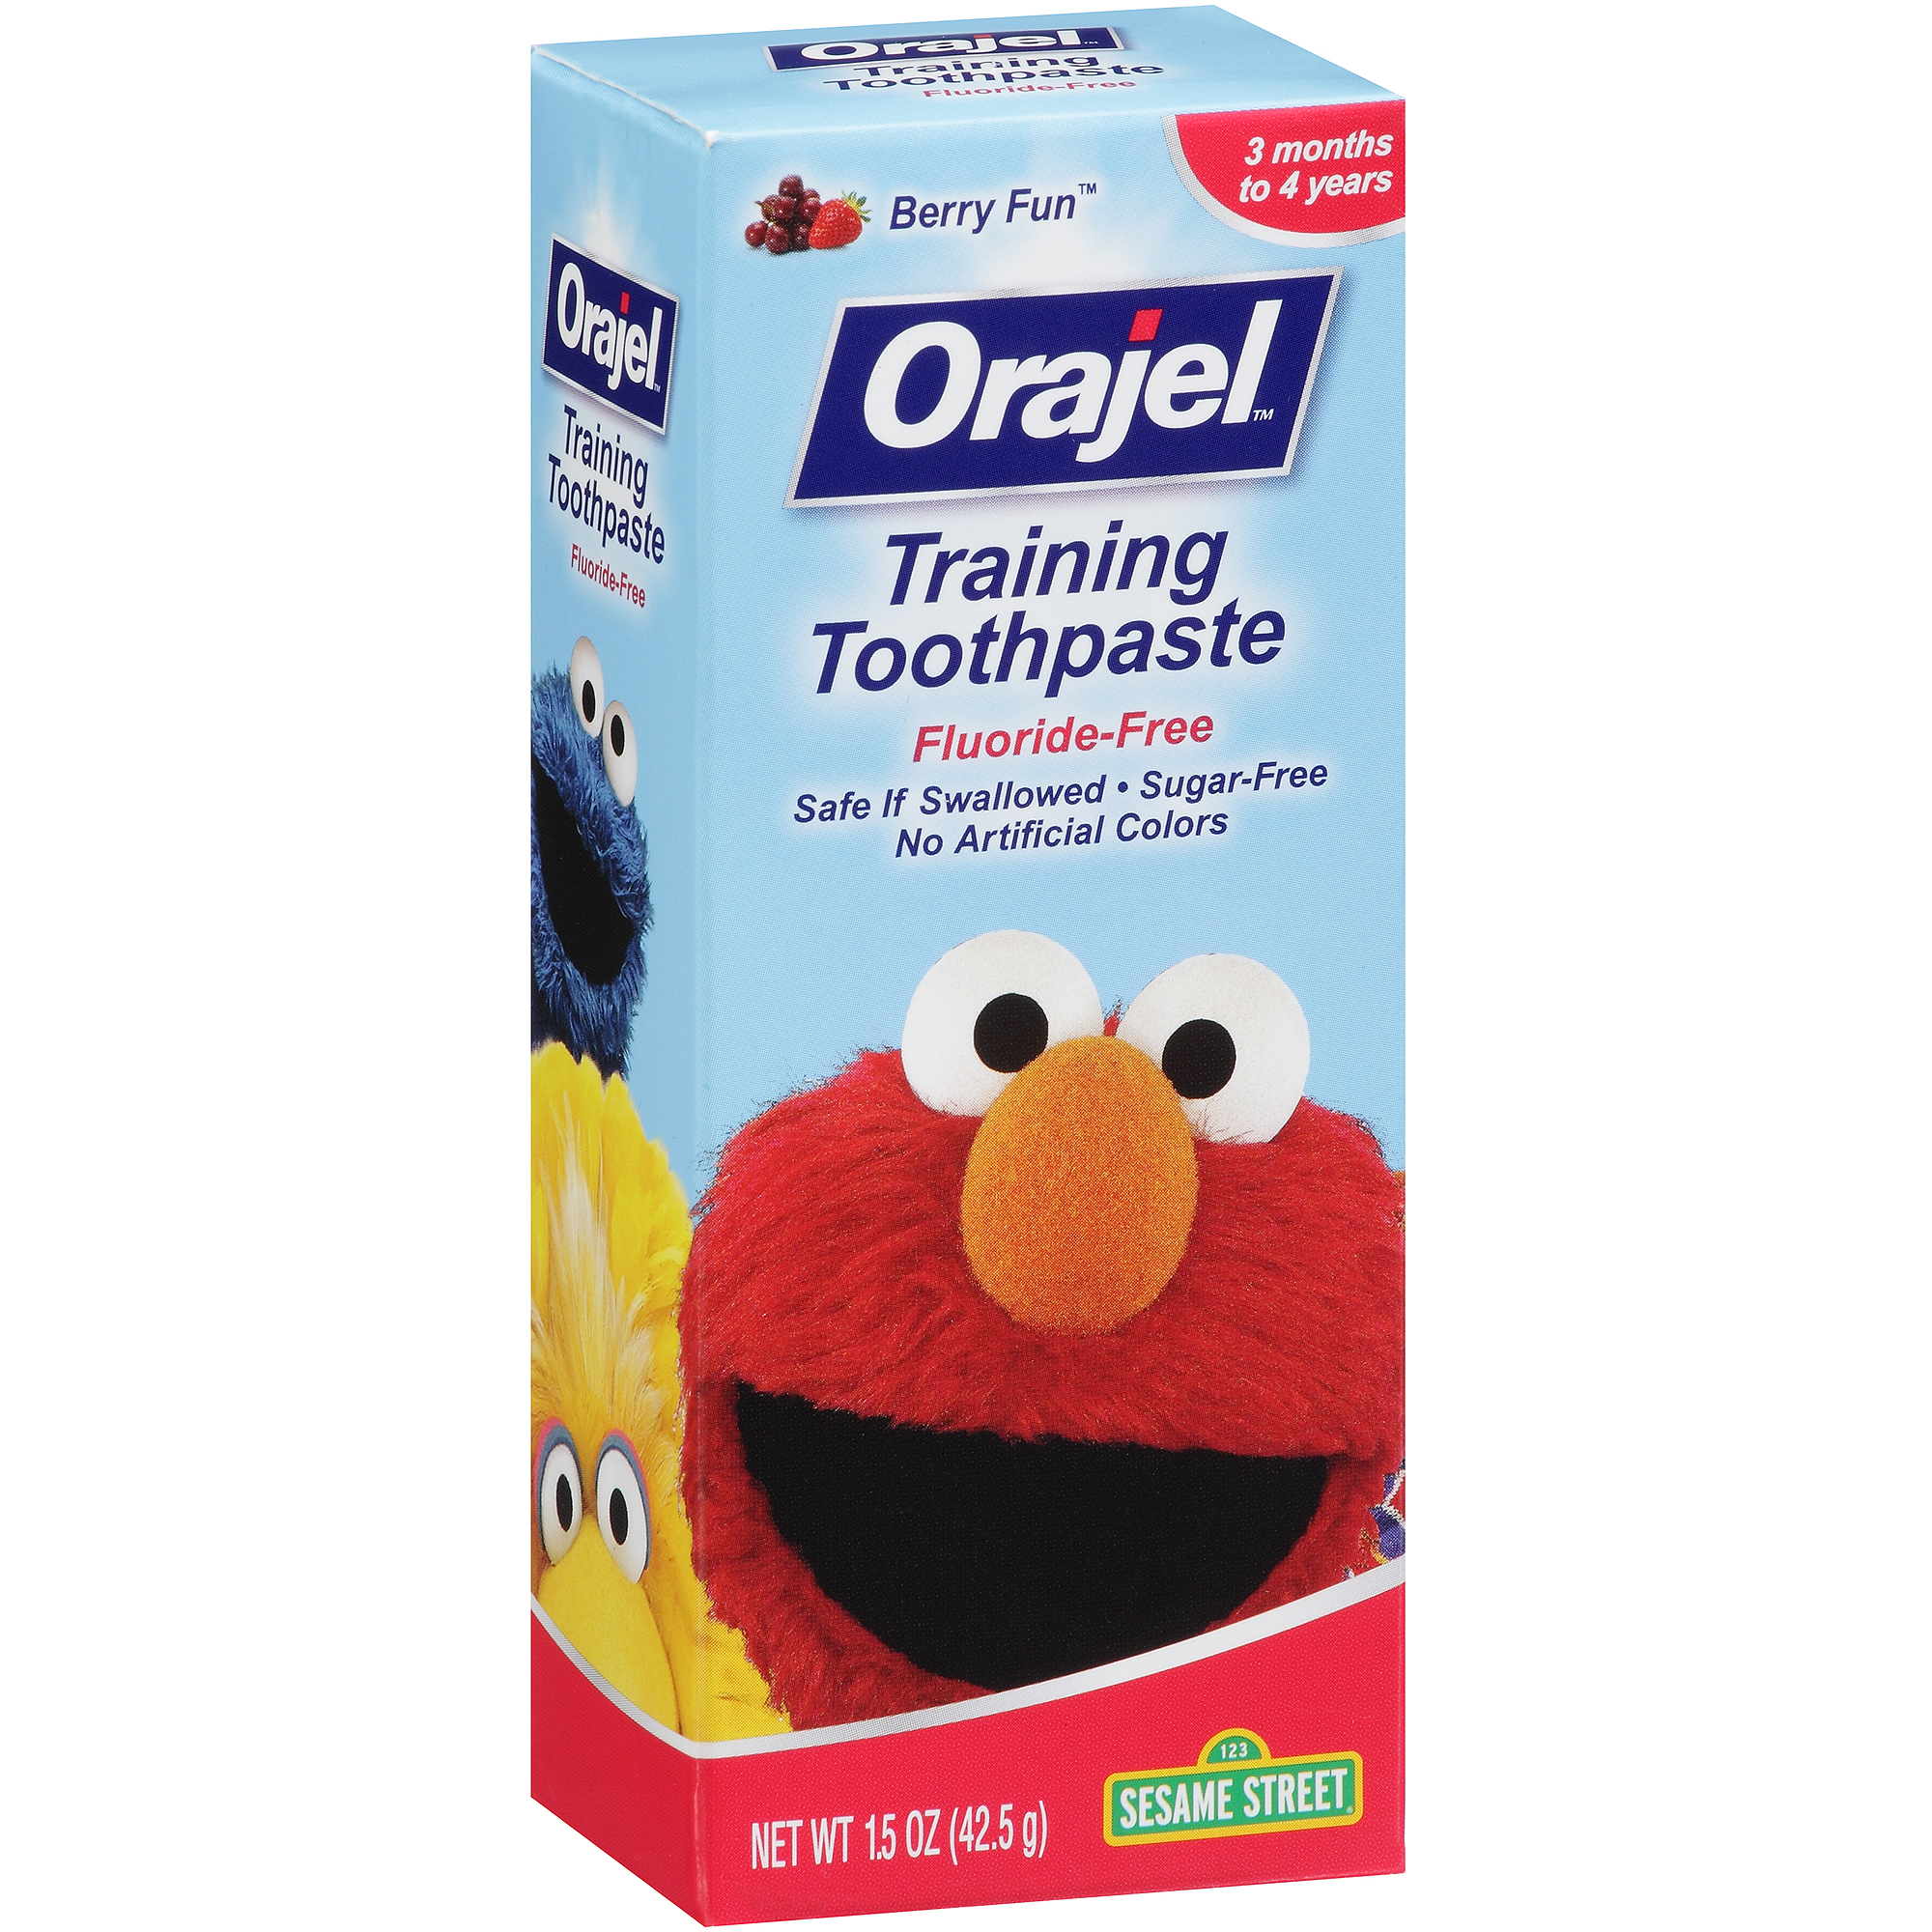 Orajel Berry Fun Training Toothpaste, 1.5 oz